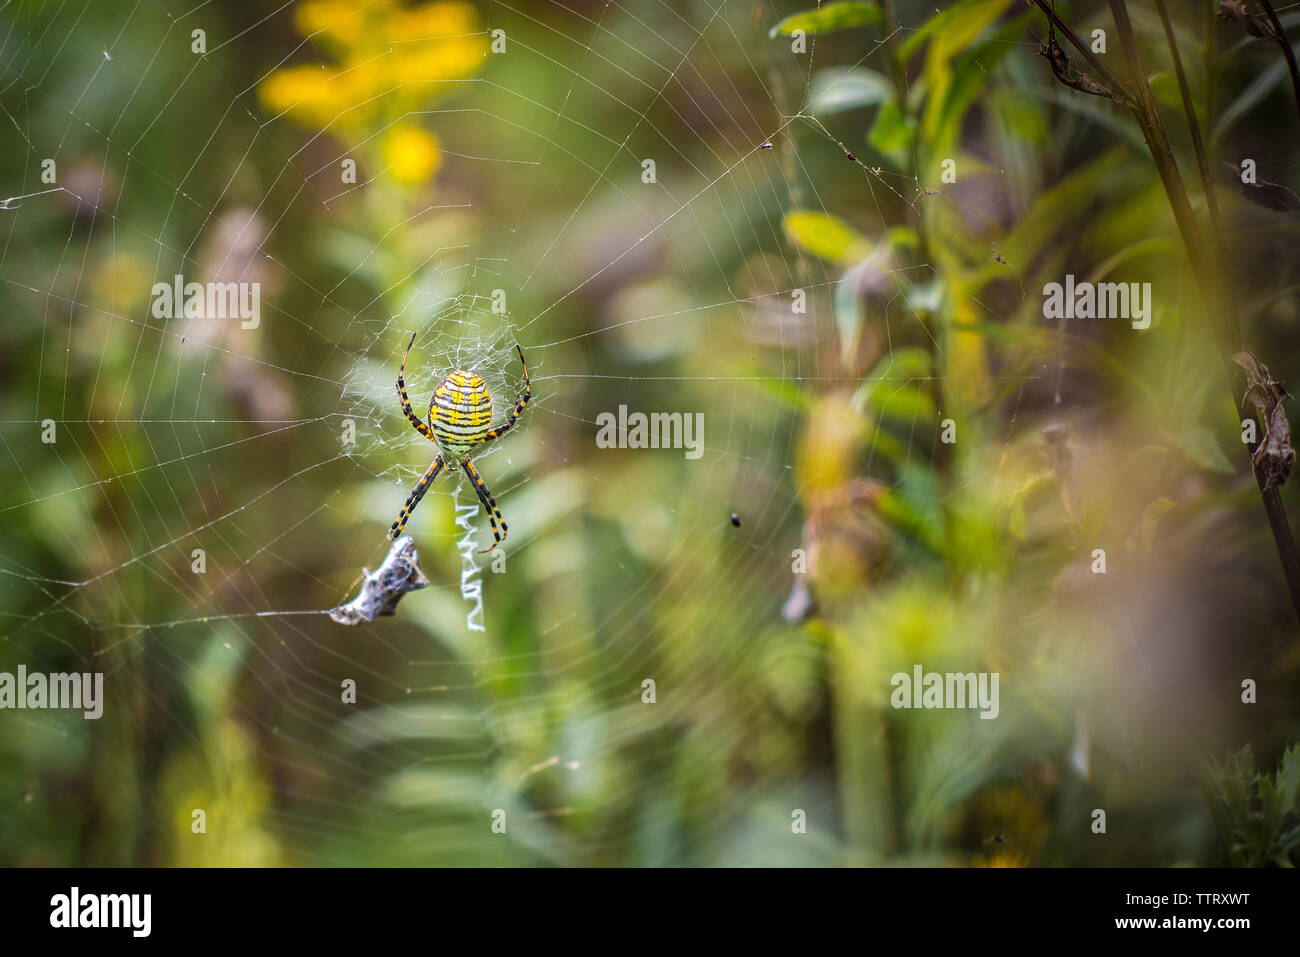 Close-up of spider on wed - Stock Image